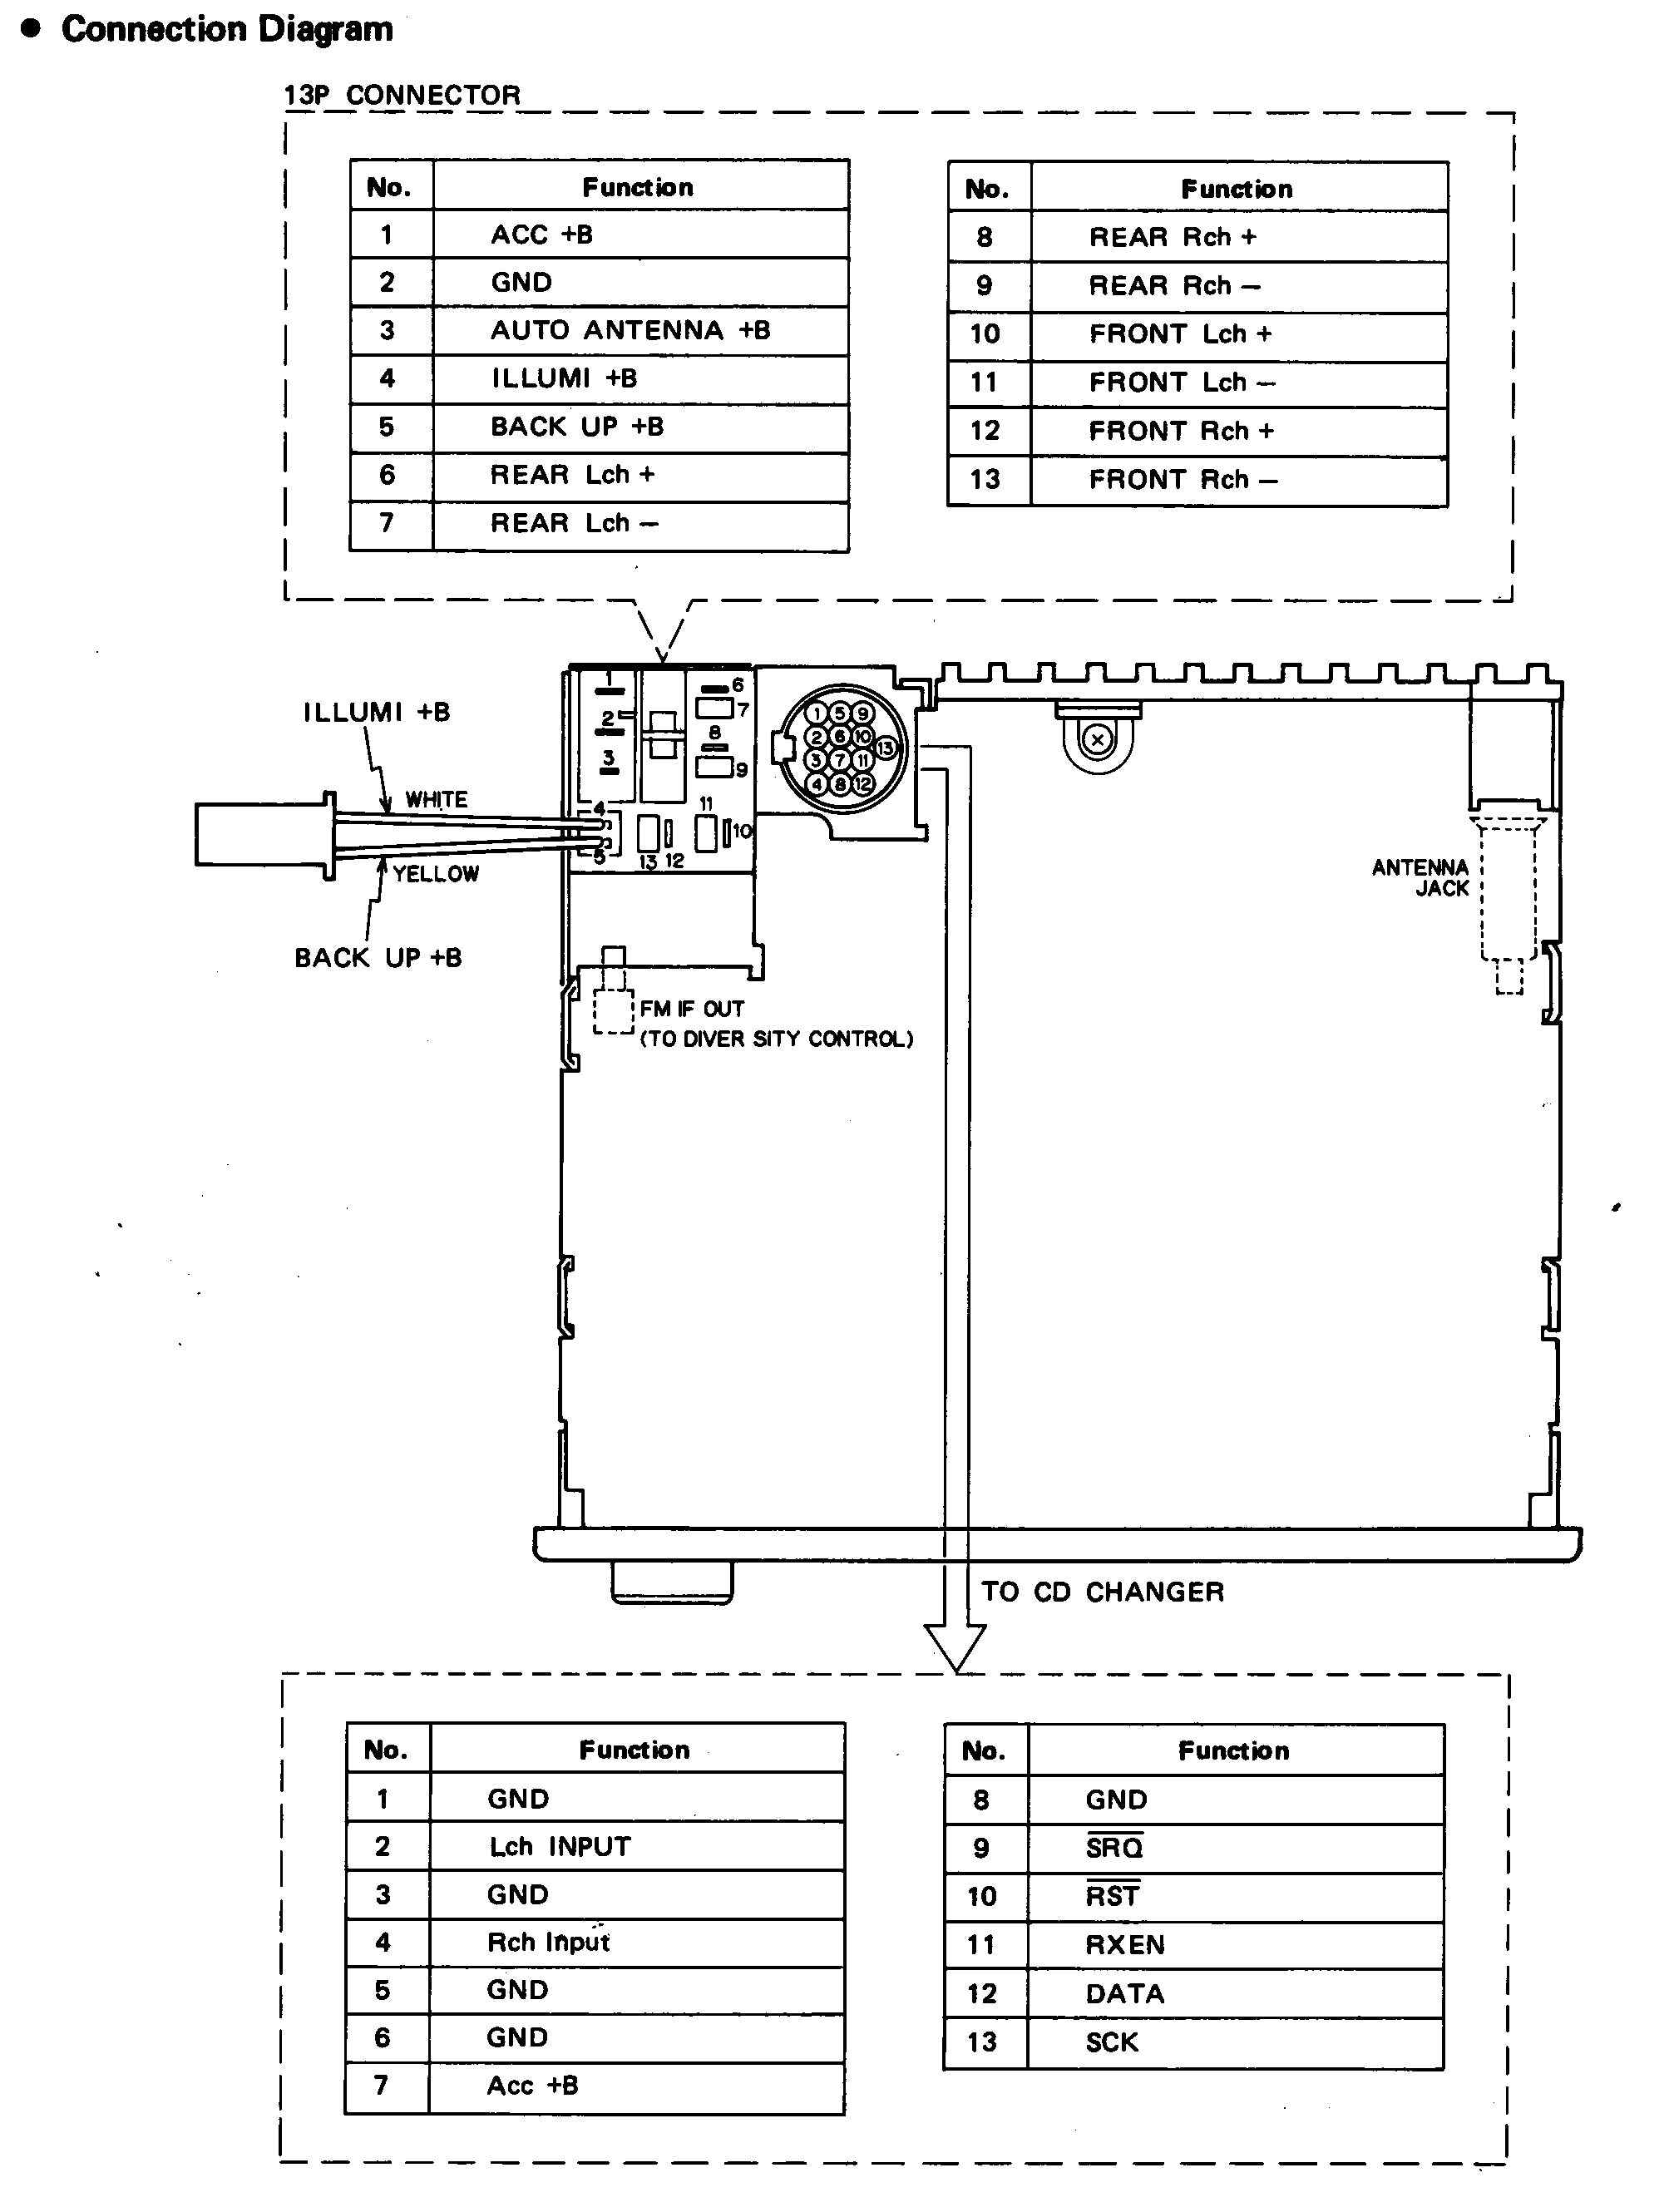 Isuzu Stock Radio Wiring Schematic Great Design Of Diagram 1988 Truck Engine Harness Car Audio Wire Codes Bmw Factory Stereo Repair Bose Rh Carstereohelp Net Light System Ftr